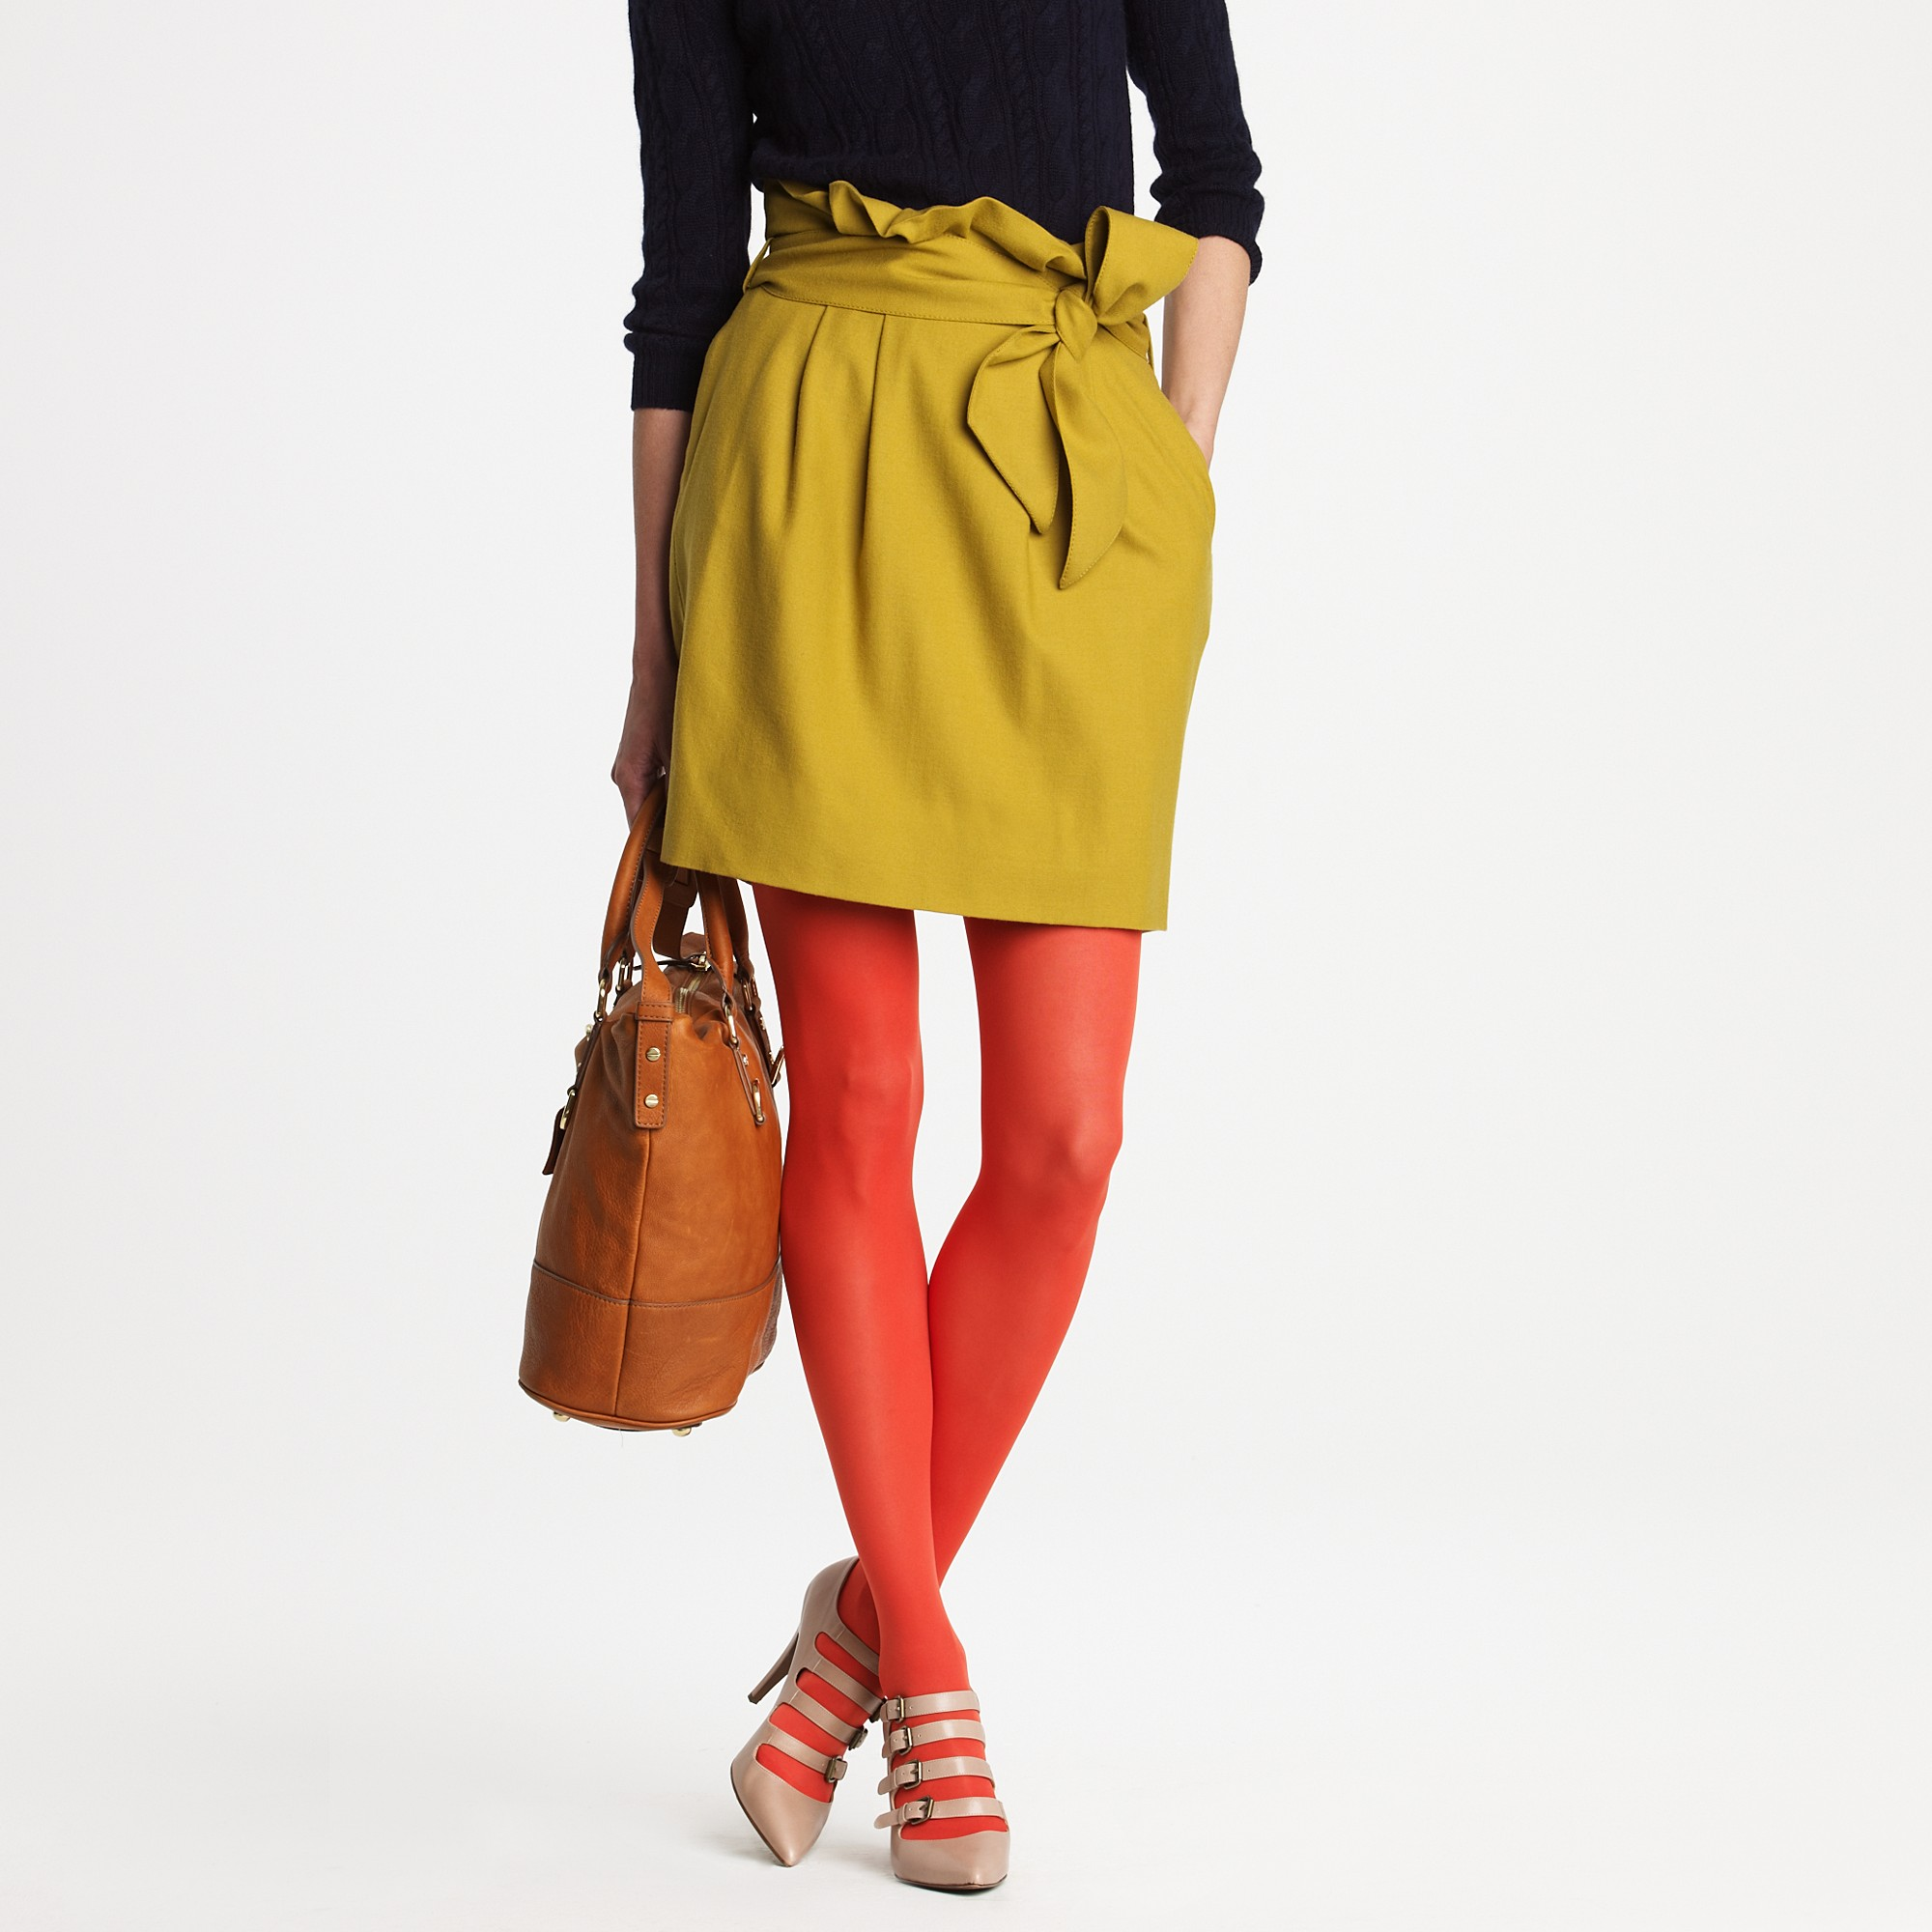 1c0f4d0e6c8 Lyst - J.Crew Solid Opaque Tights in Red